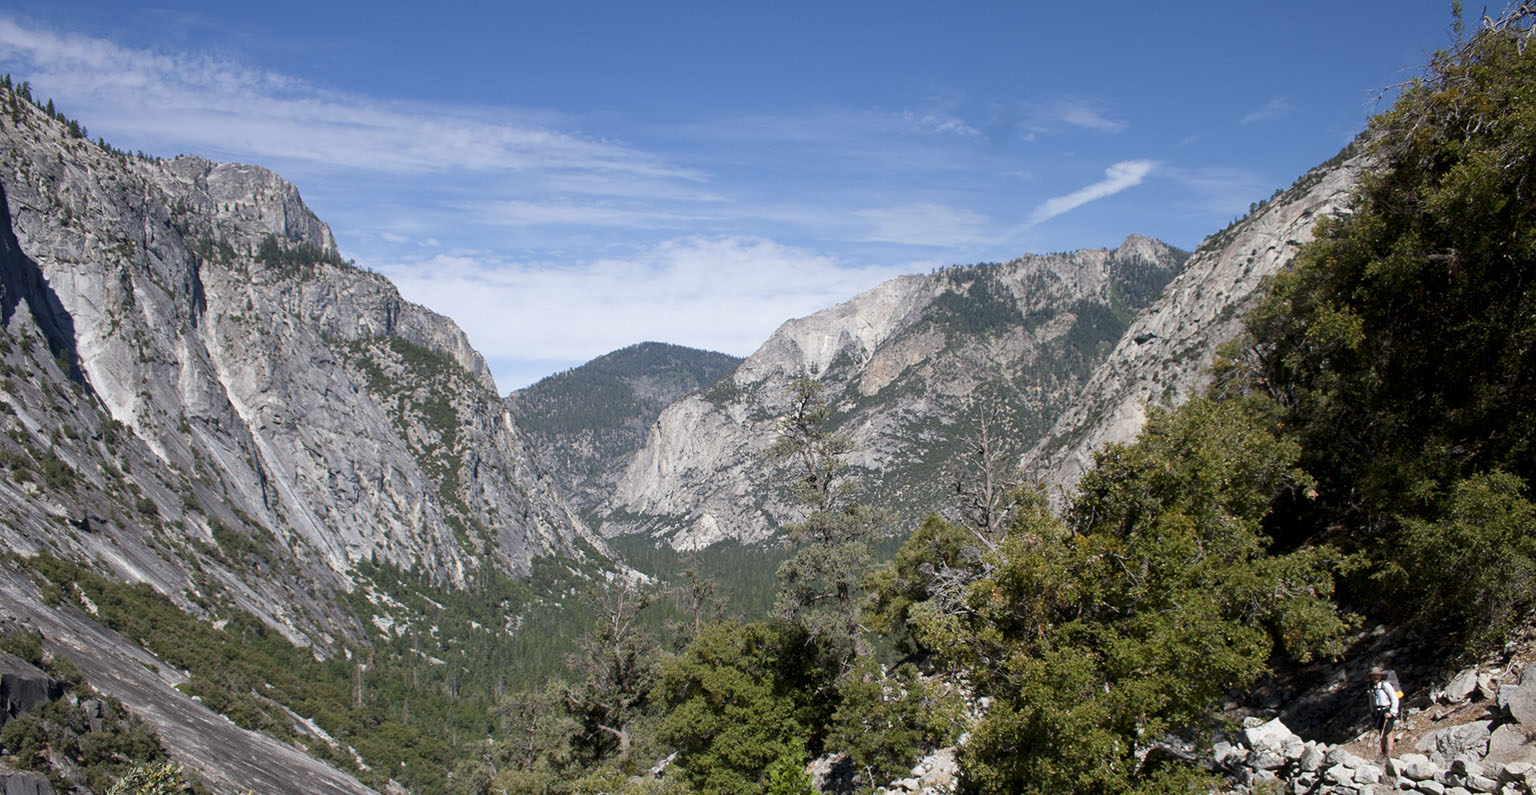 Looking down into Kings Canyon from top of the switchbacks